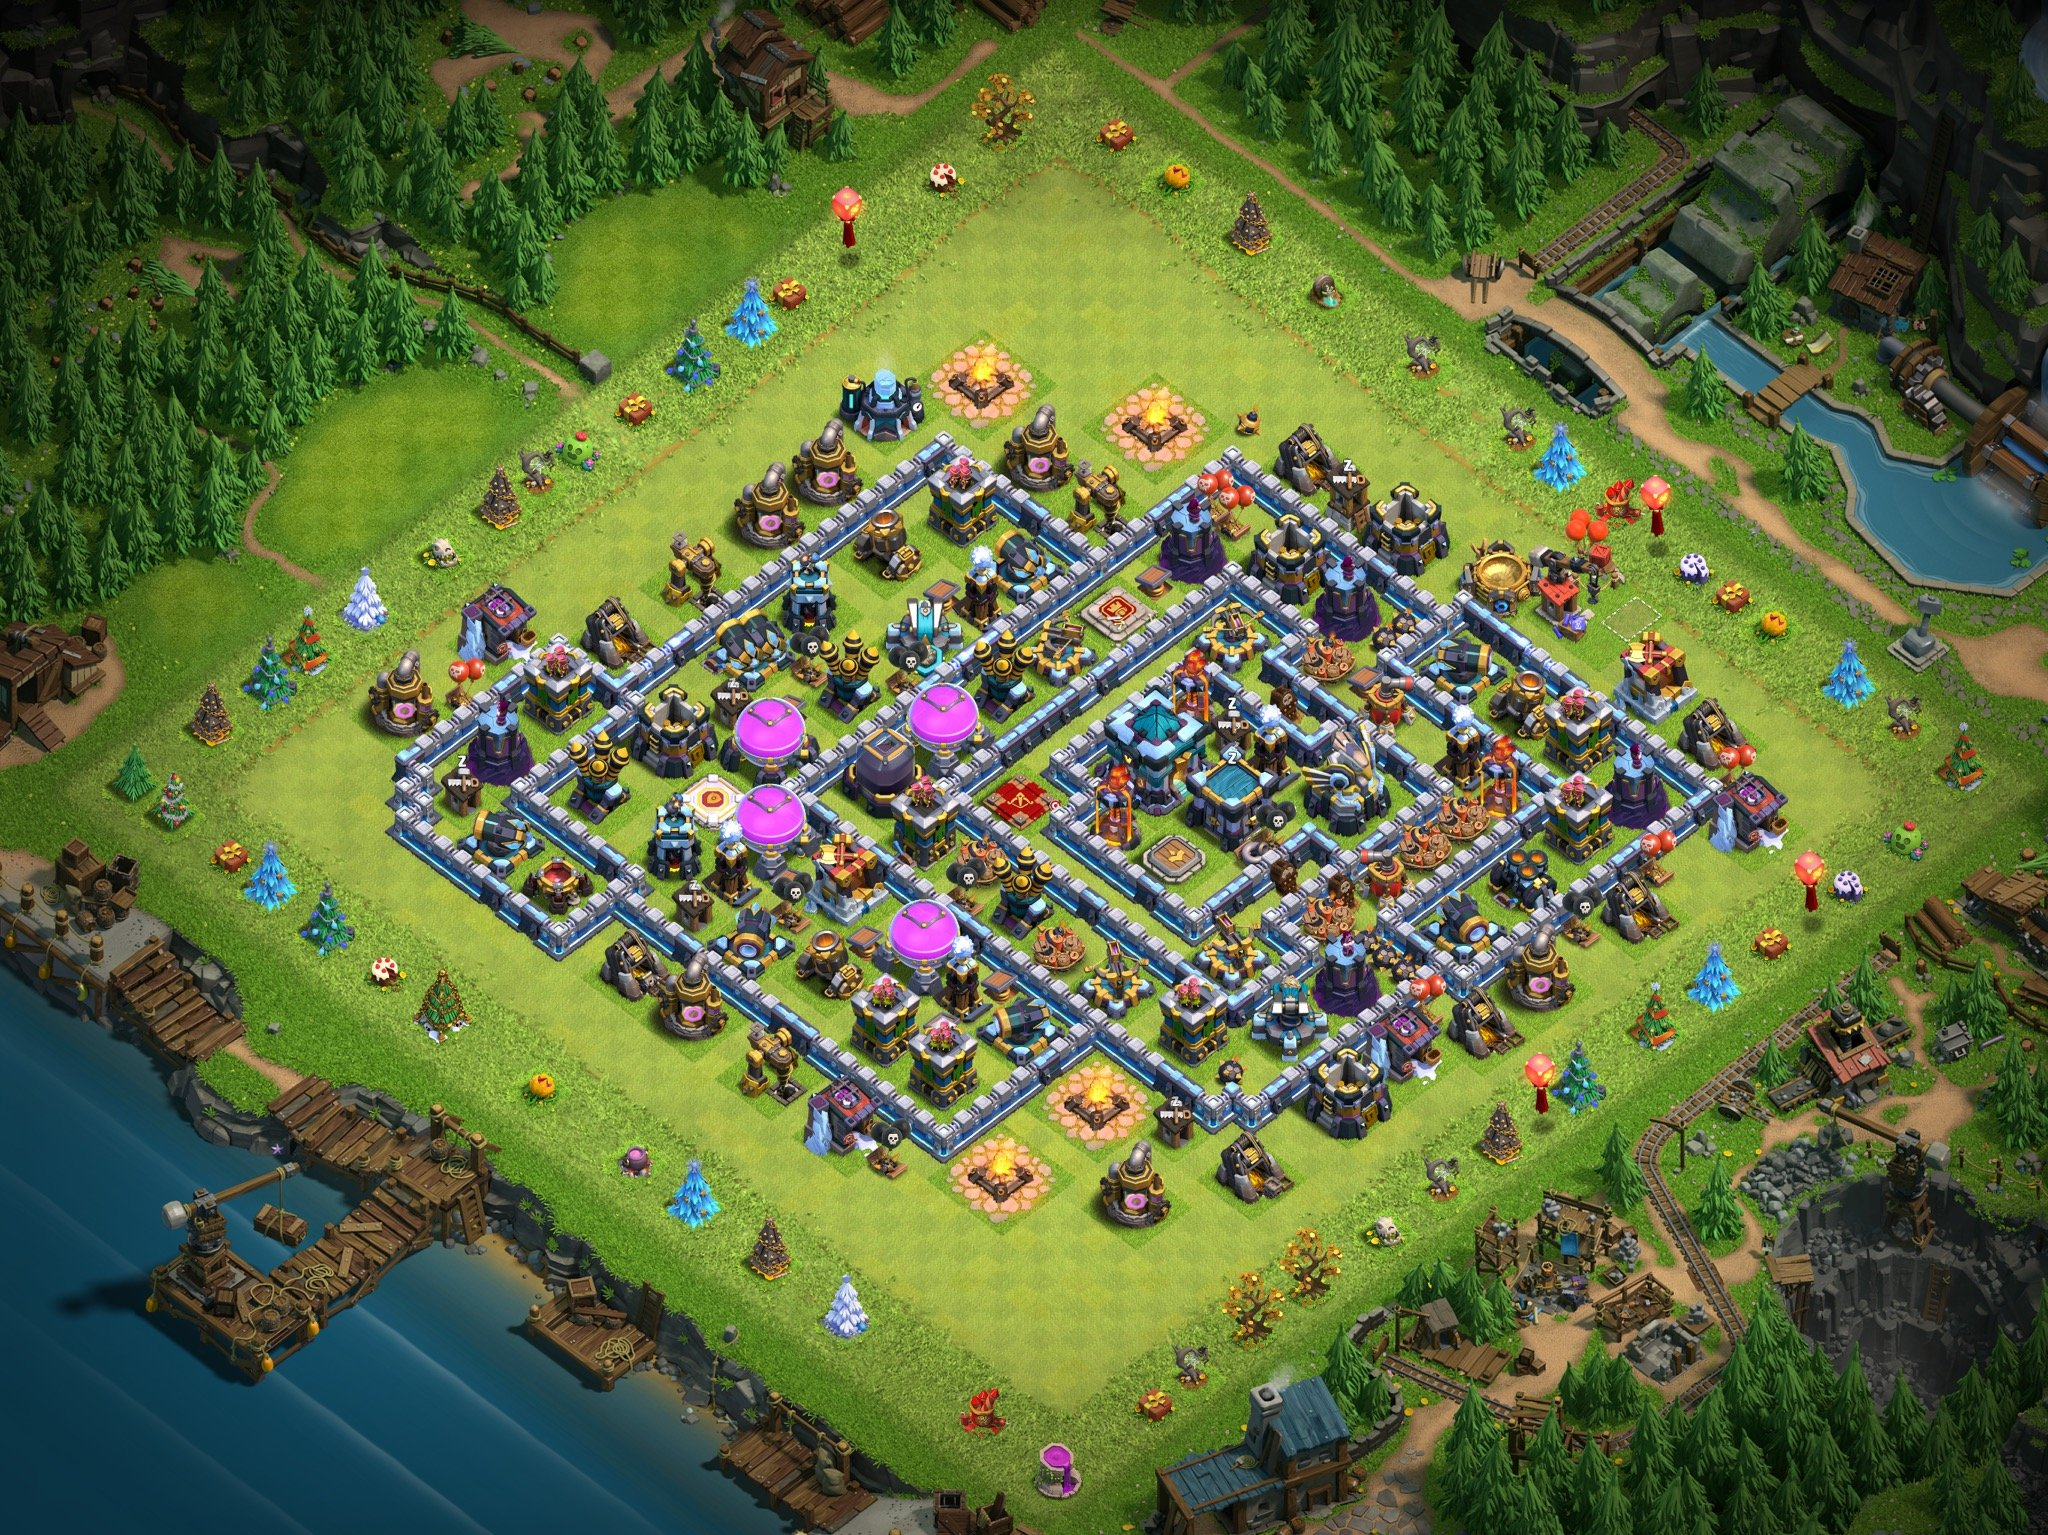 House Of Clashers On Twitter Clash Of Clans Village Skin Giveaway Clashy Constructs Scenery U 7 Through Paypal To Enter Follow Retweet Bonus Optional Subscribe To House Of